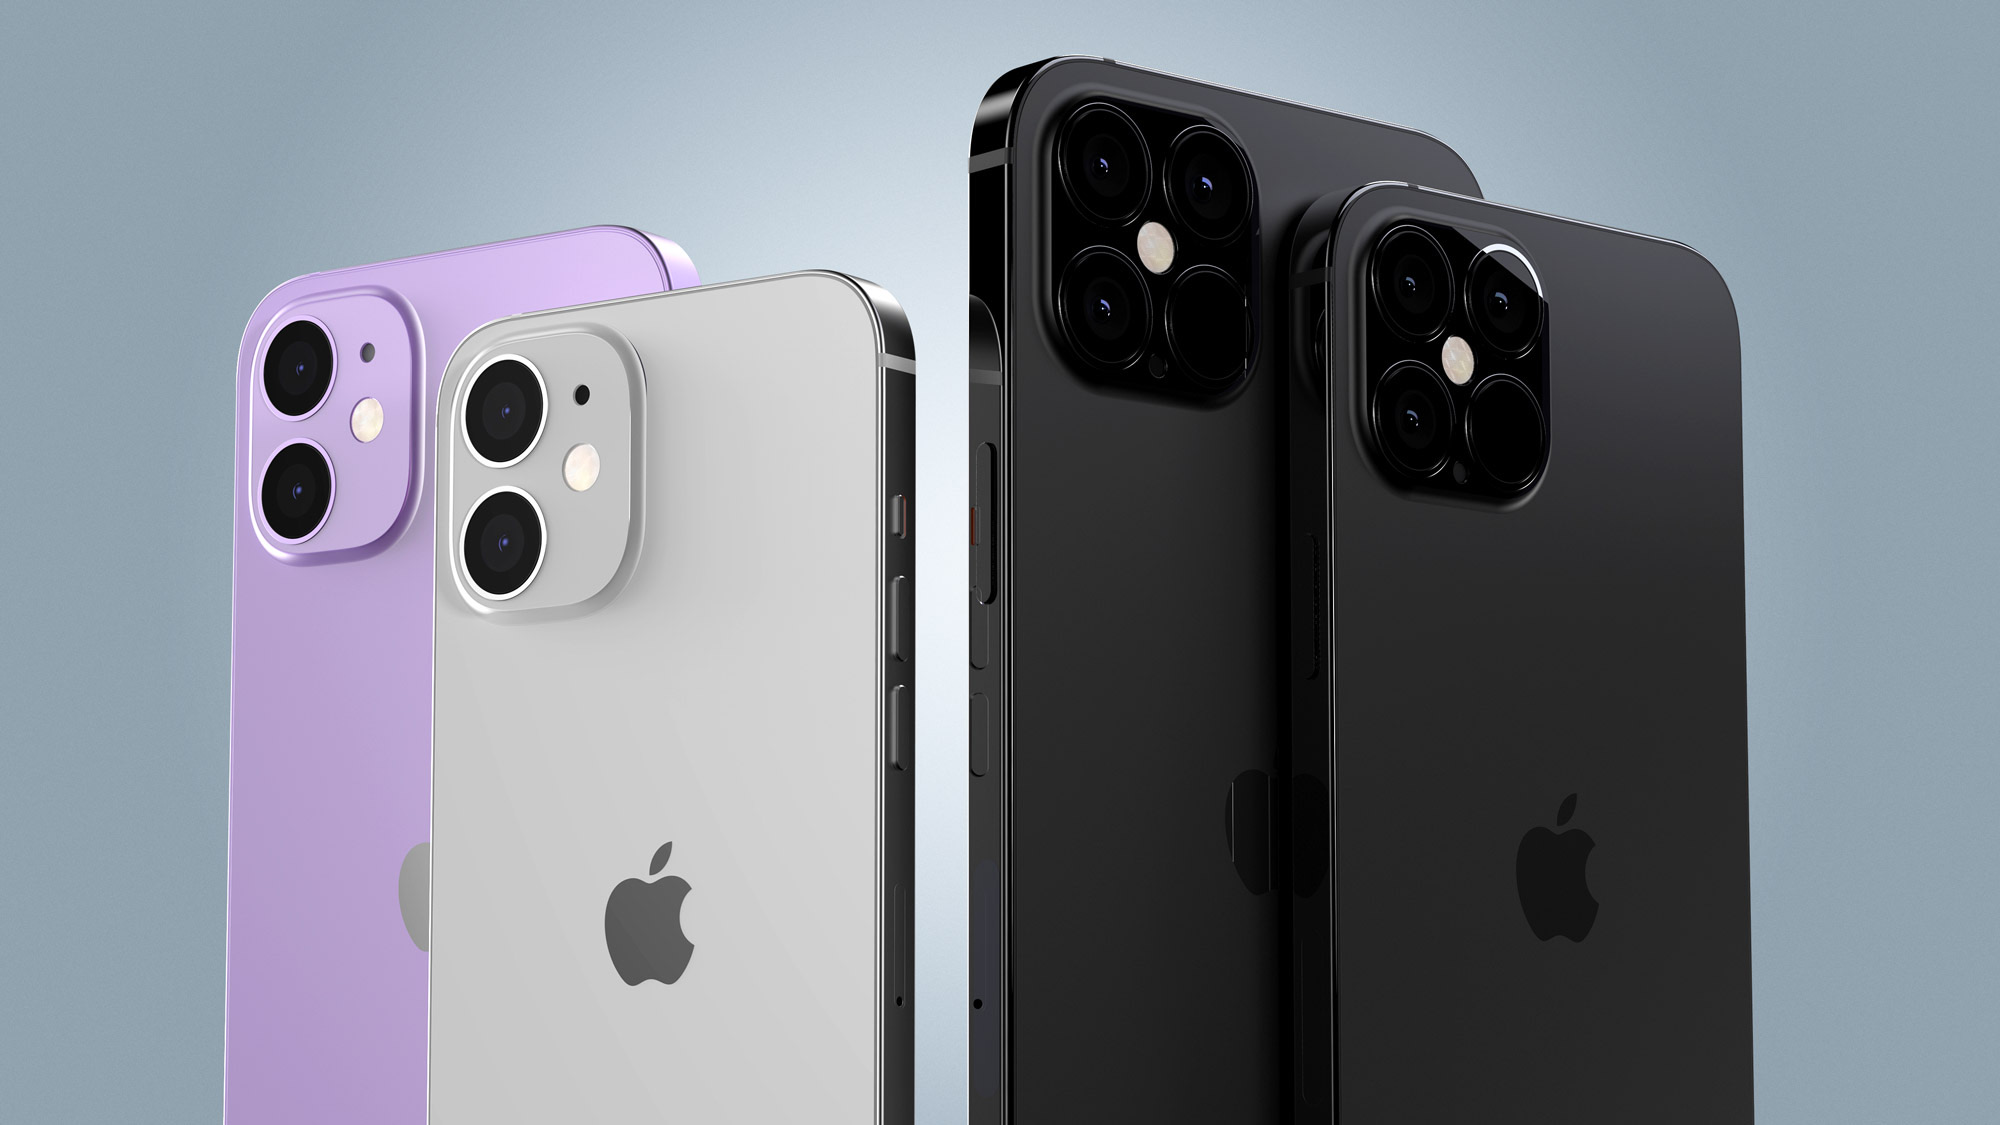 iPhone 12 | Specifications